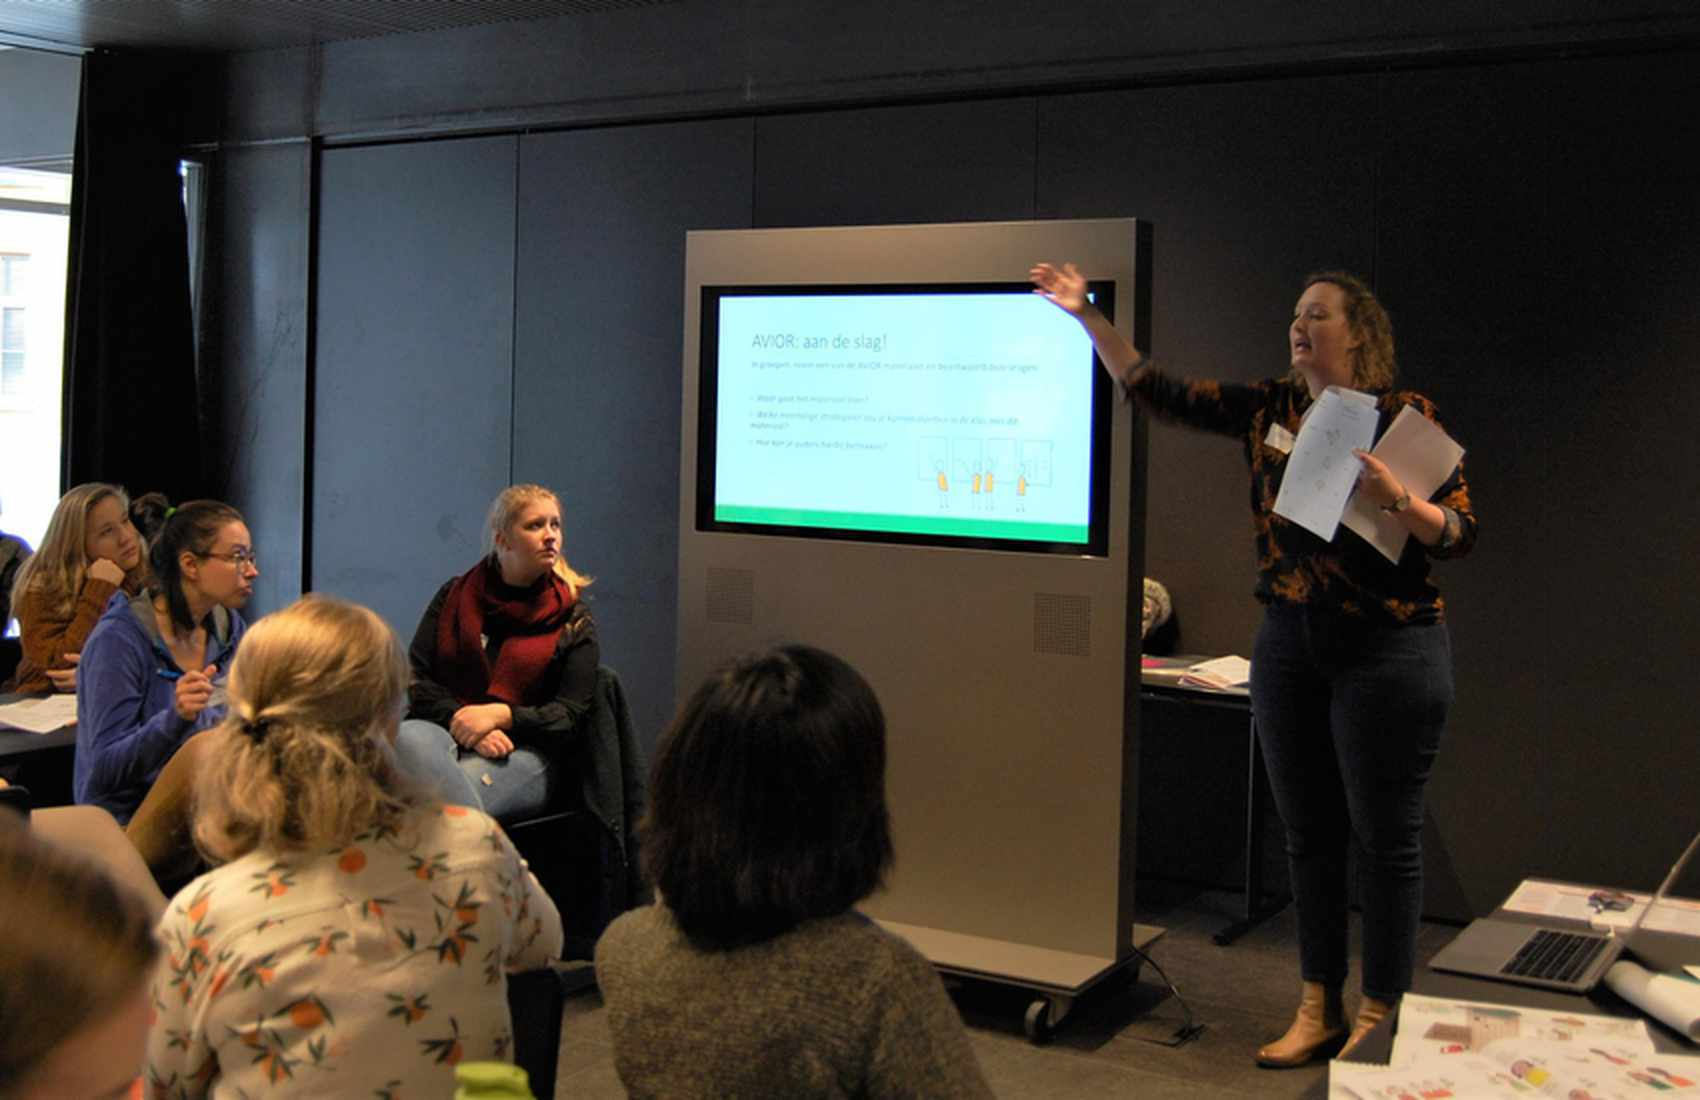 Workshop 'AVIOR project, bilingual materials for migrant children in Europe' - Laurinde Koster (Rutu Foundation)